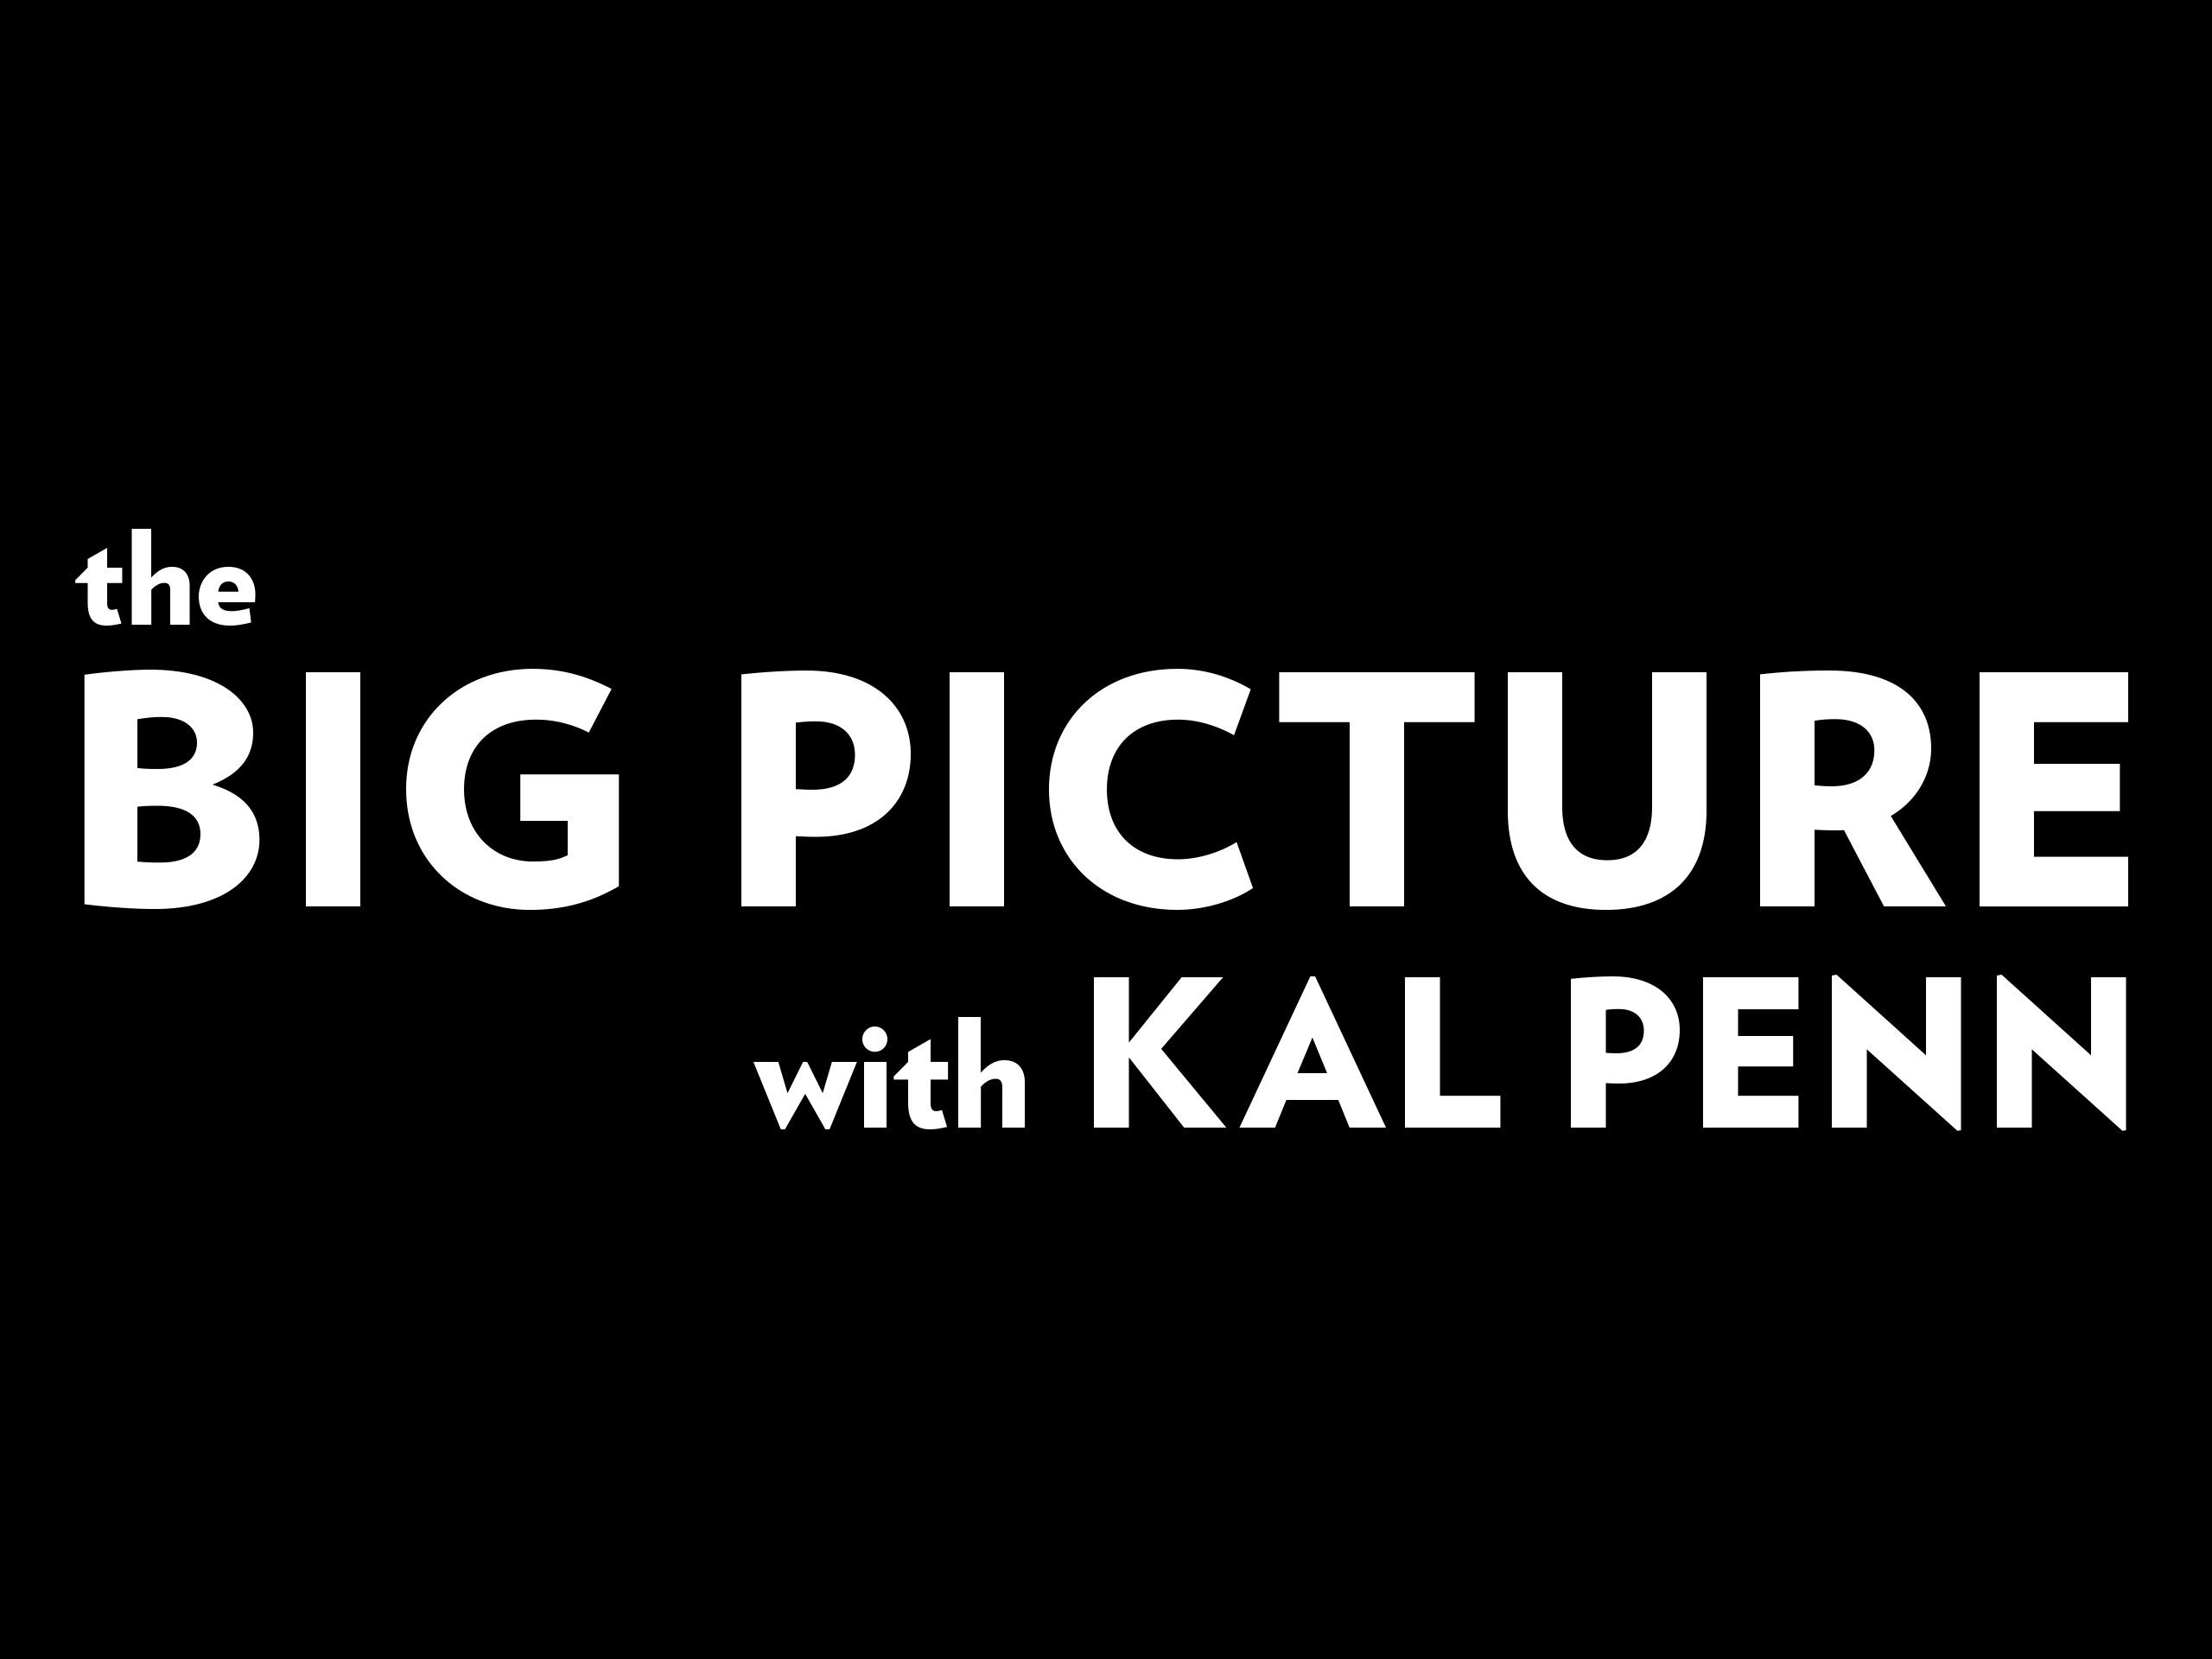 The Big Picture with Kal Penn - Season 1